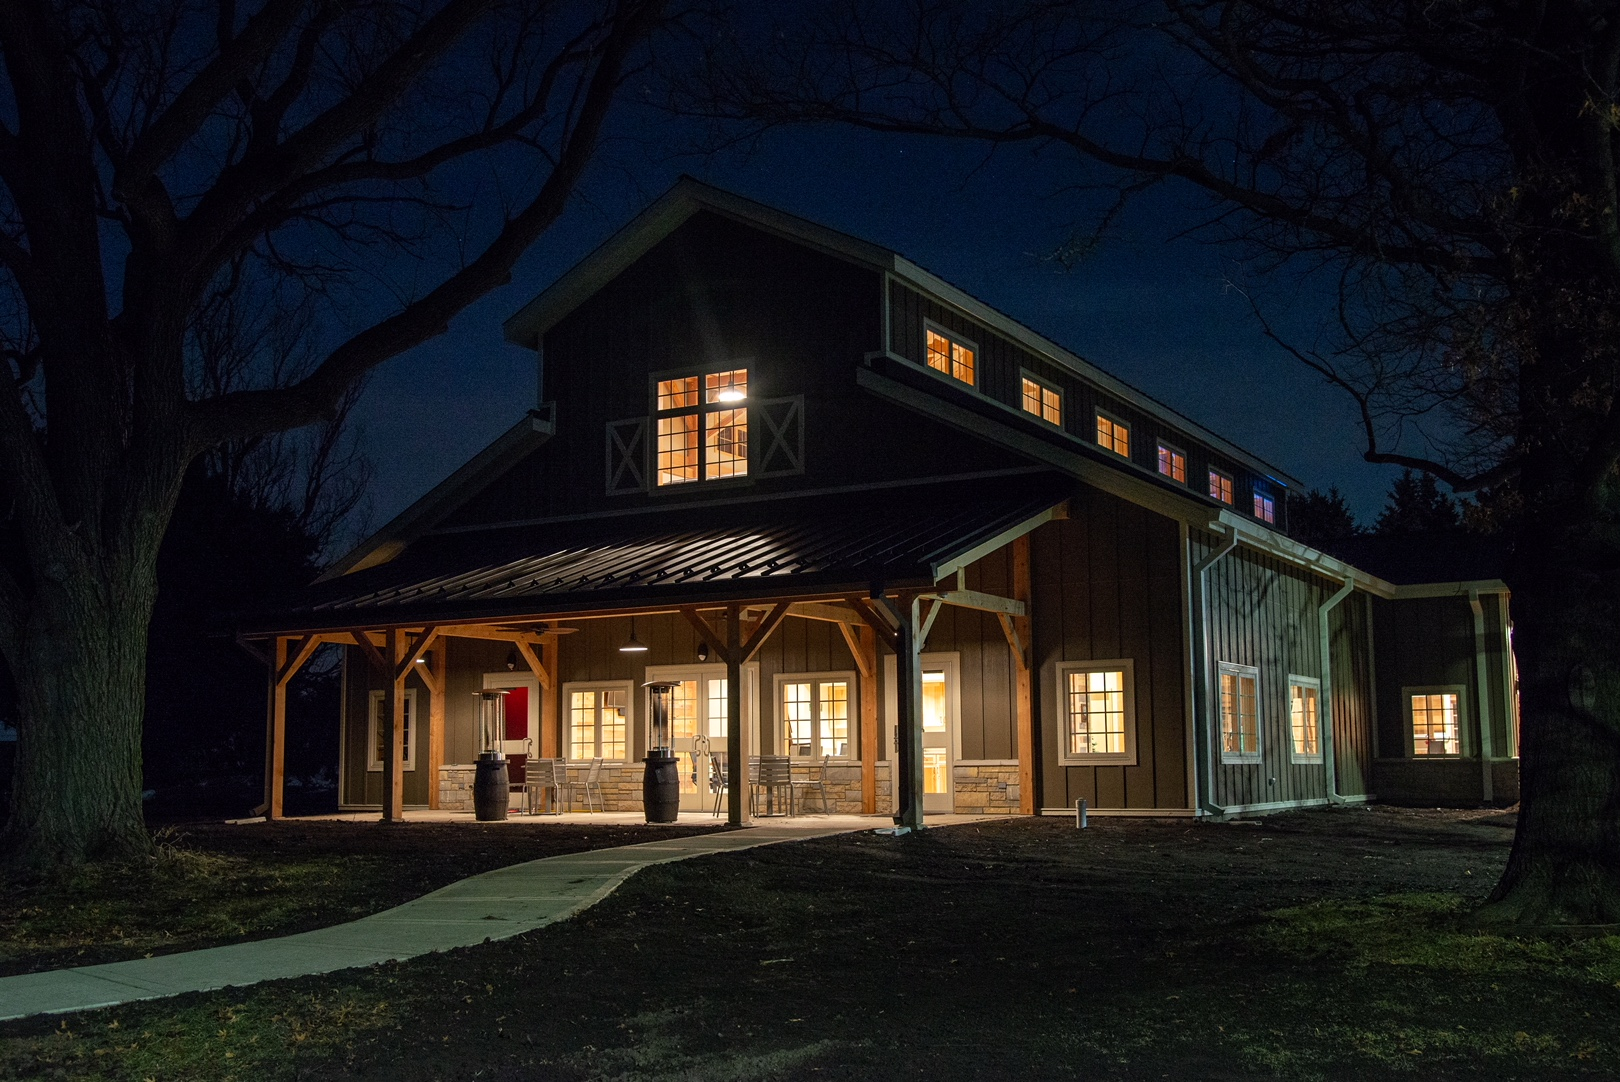 Our new visitor's center is open on Fri./Sat. from 1:30-8:30pm, Sun. 1:30-5:30pm.  On Fri/Sat, tours are given at 2, 4 and 6 PM.  On Sun, tours are given at 2 and 4 PM.